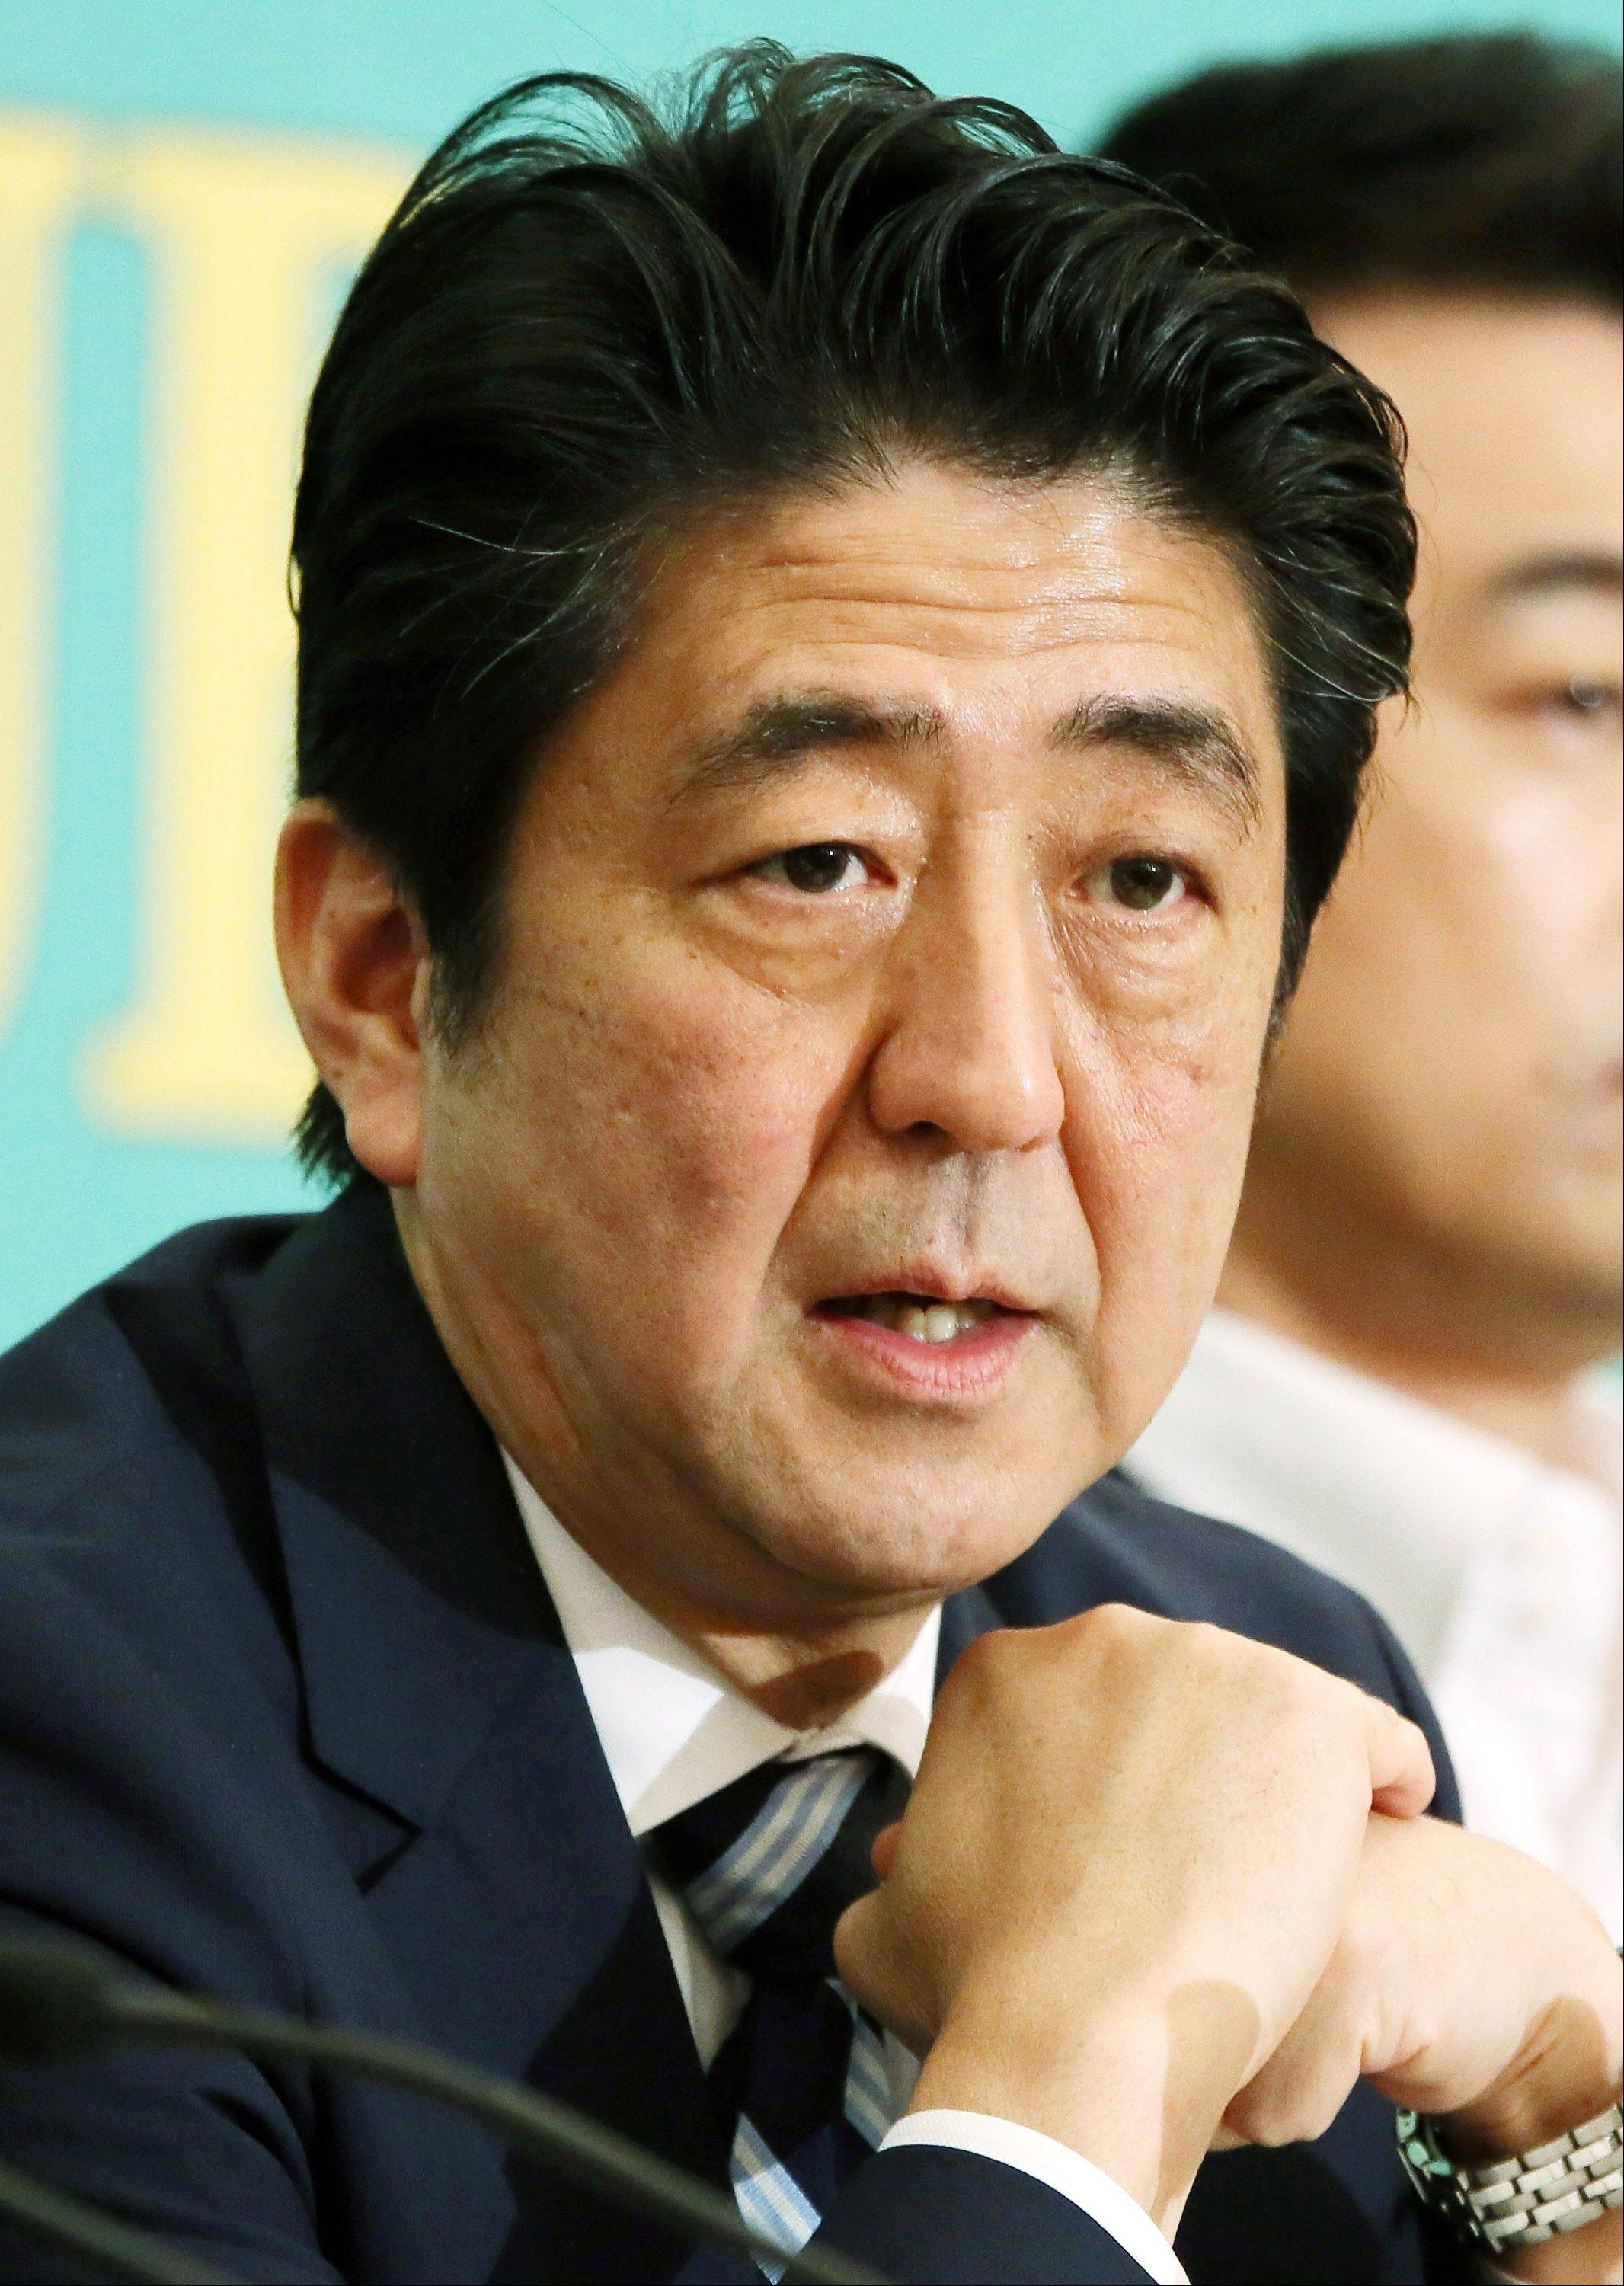 Shinzo Abe, Japan's prime minister and president of the Liberal Democratic Party (LDP), speaks during a debate at the Japan National Press Club in Tokyo, Japan, on Wednesday, July 3, 2013.